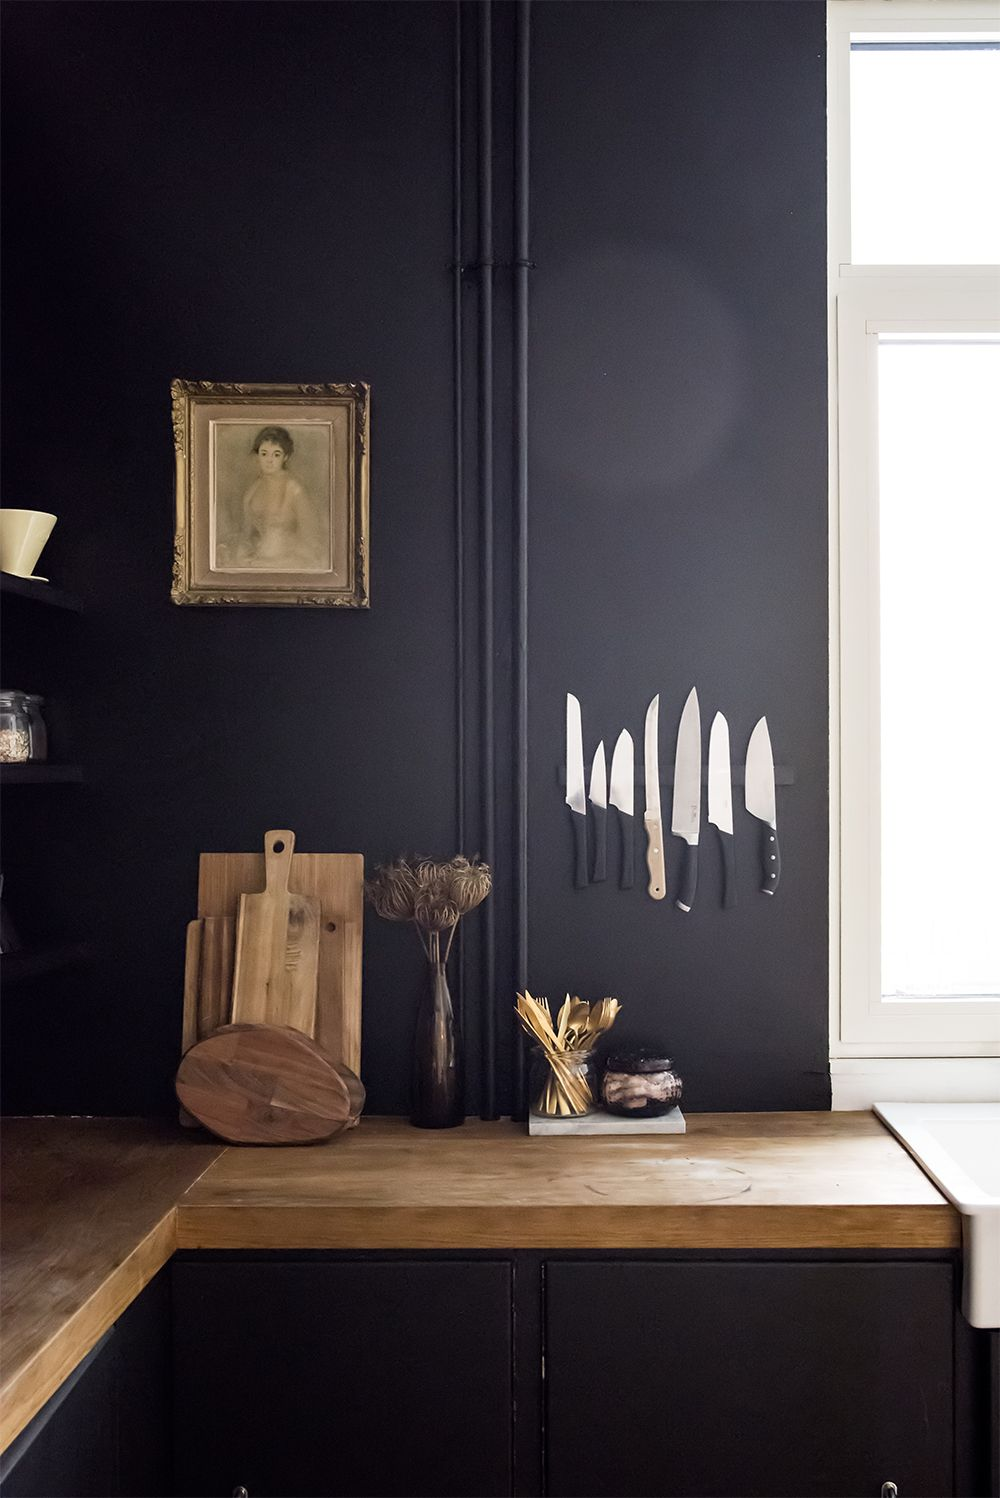 Black kitchen walls with invisible magnetic strip for knives and